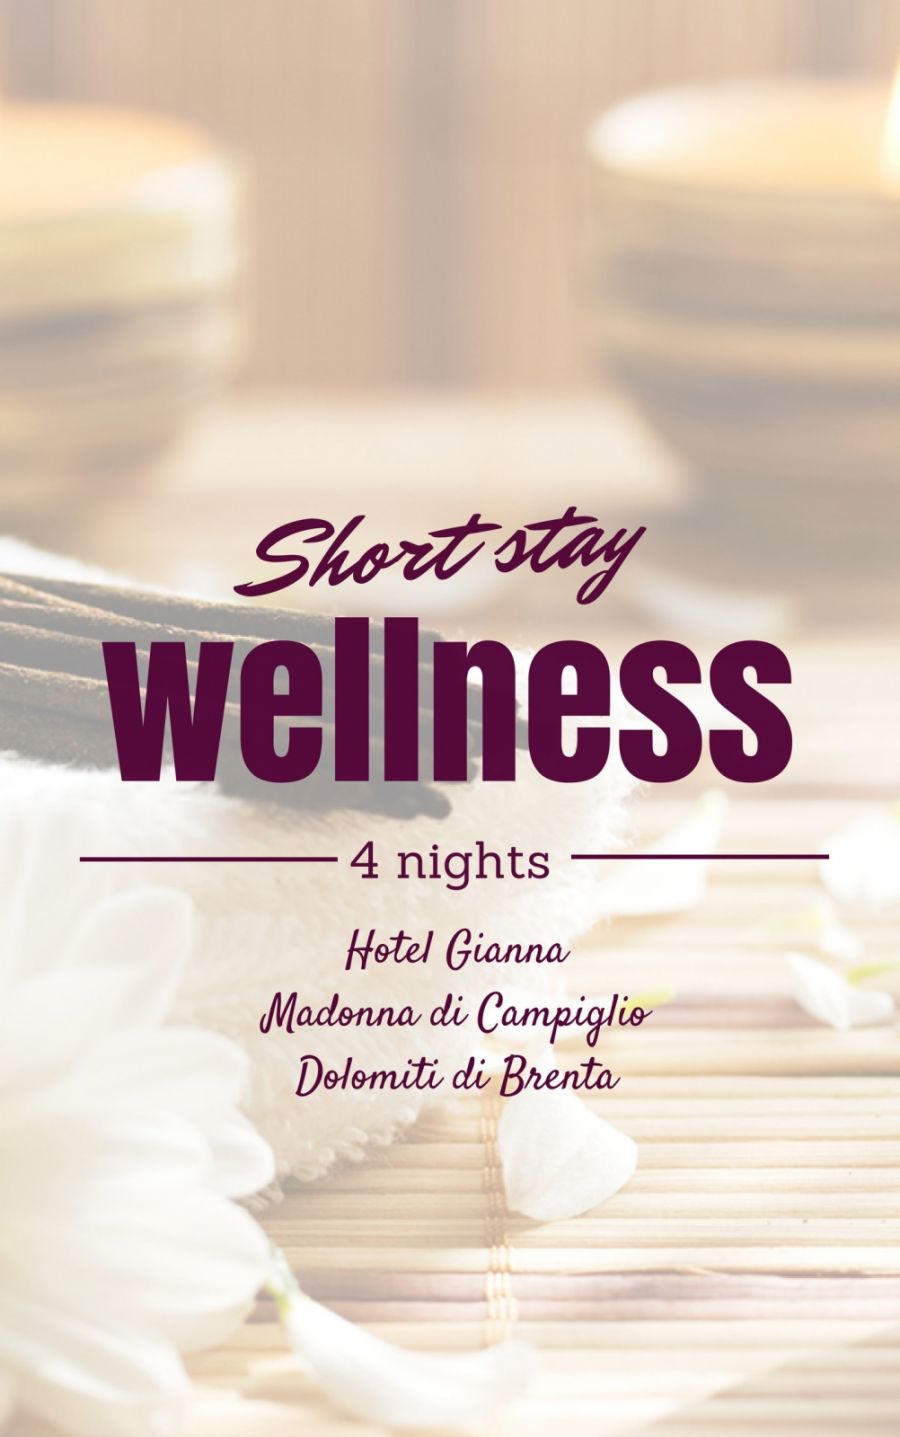 Short stay wellness